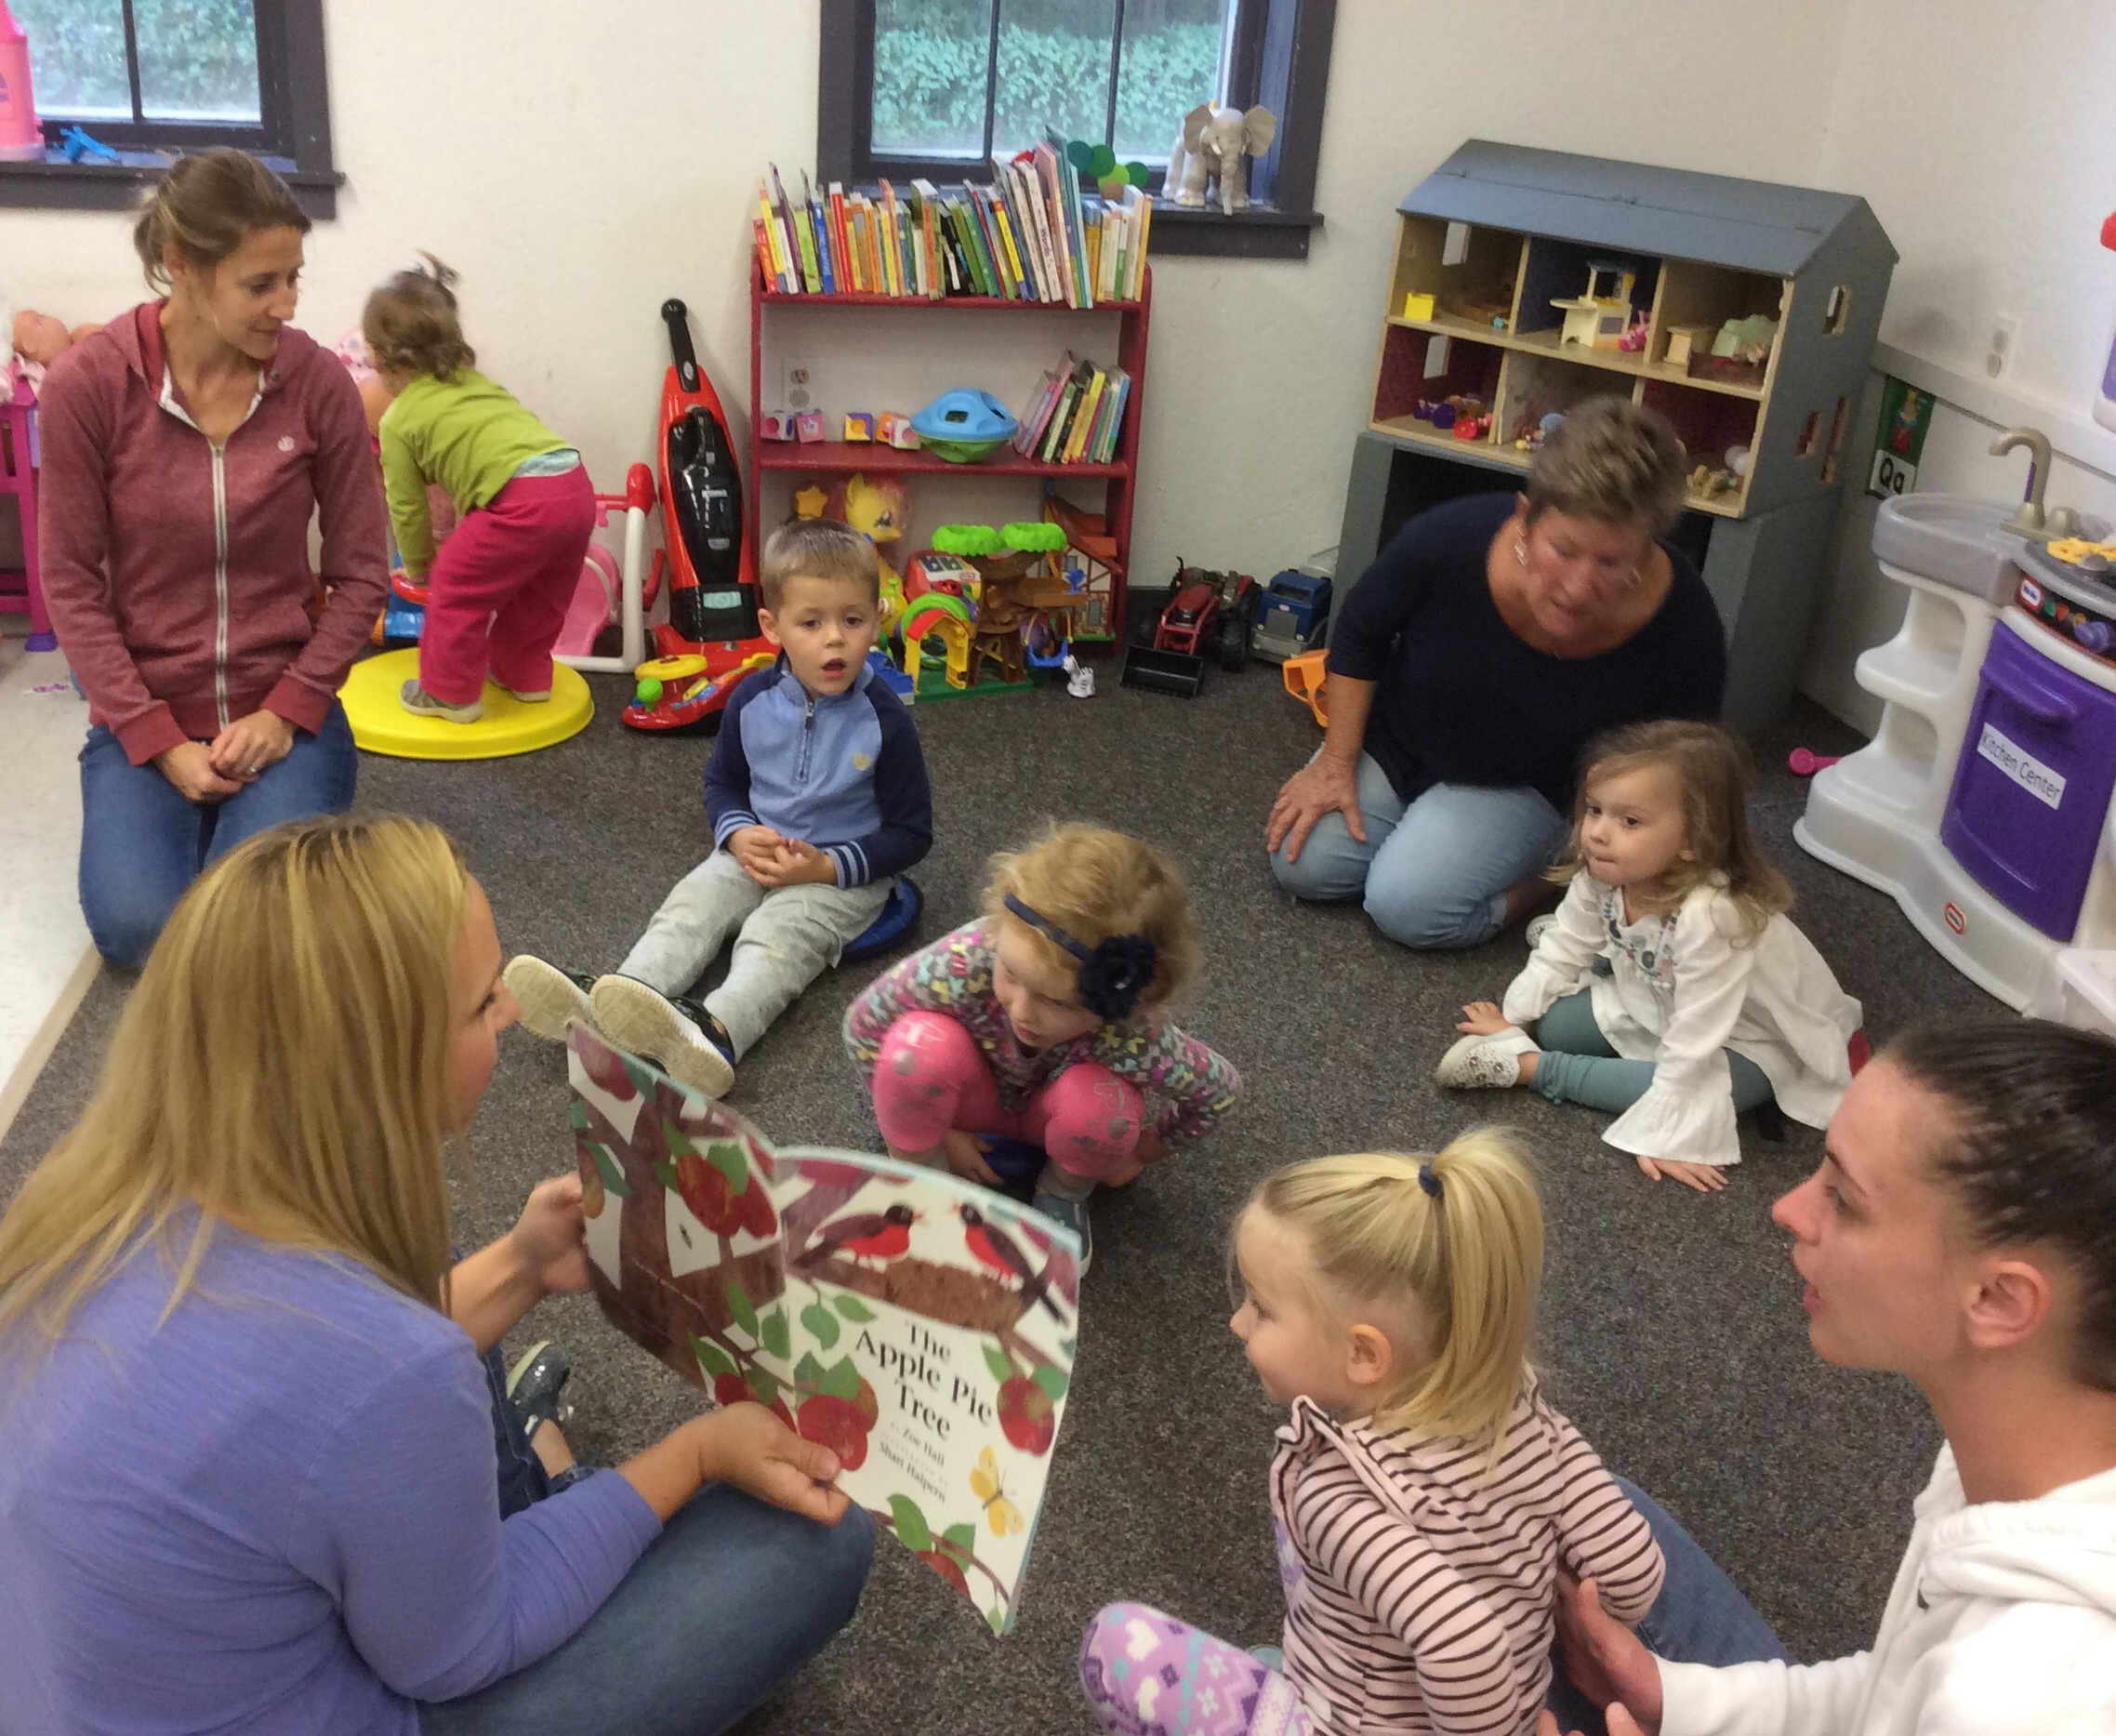 The Family Foundation 5 kids and adults are engaged with Jennifer Gagnon as she reads The Apple Pie Tree book.